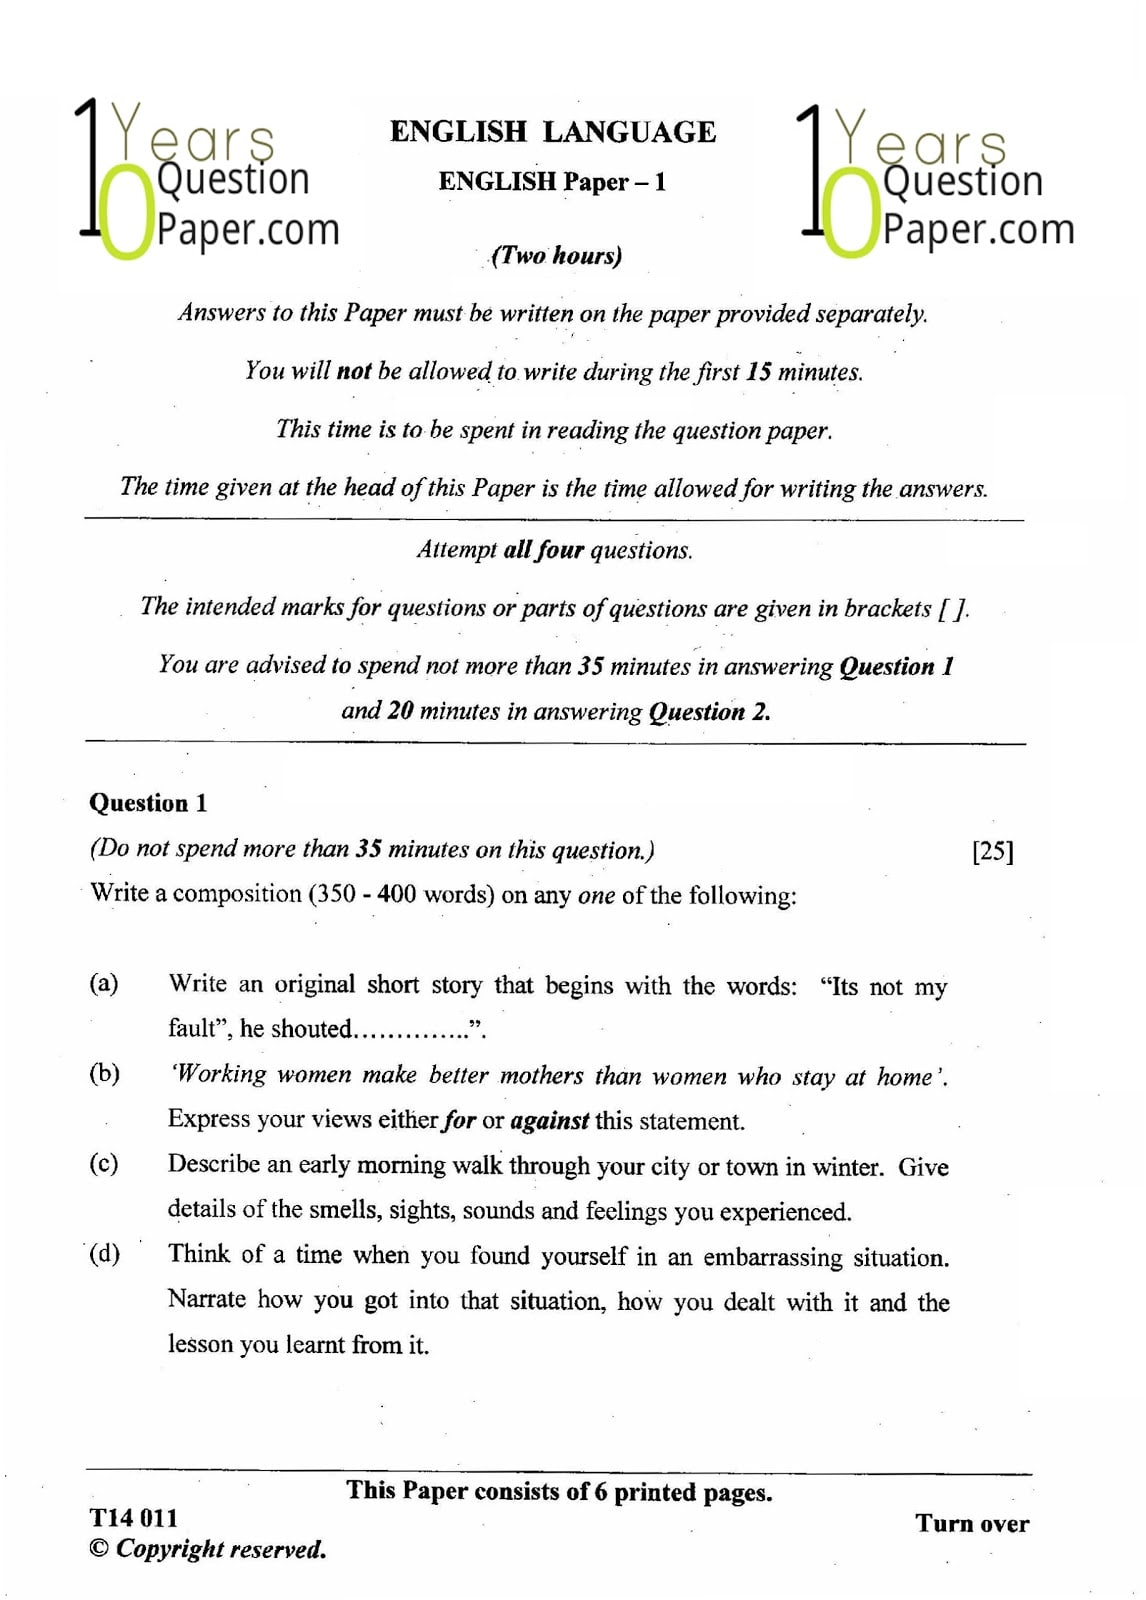 ICSE Class 10 English Language 2014 Question Paper